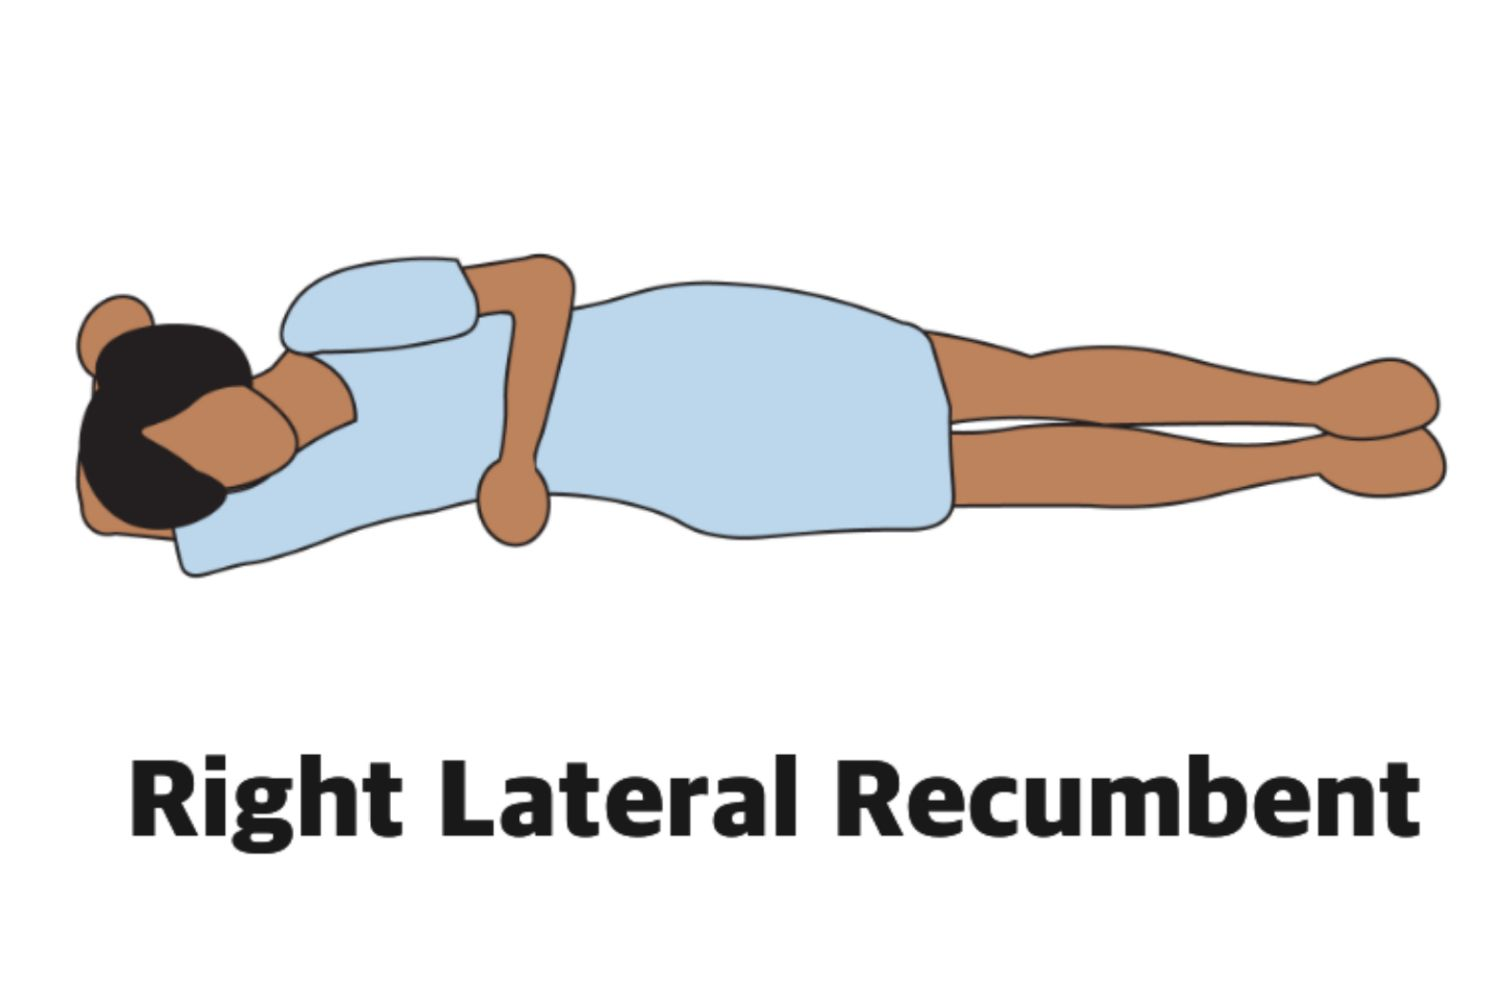 Right Lateral Recumbent